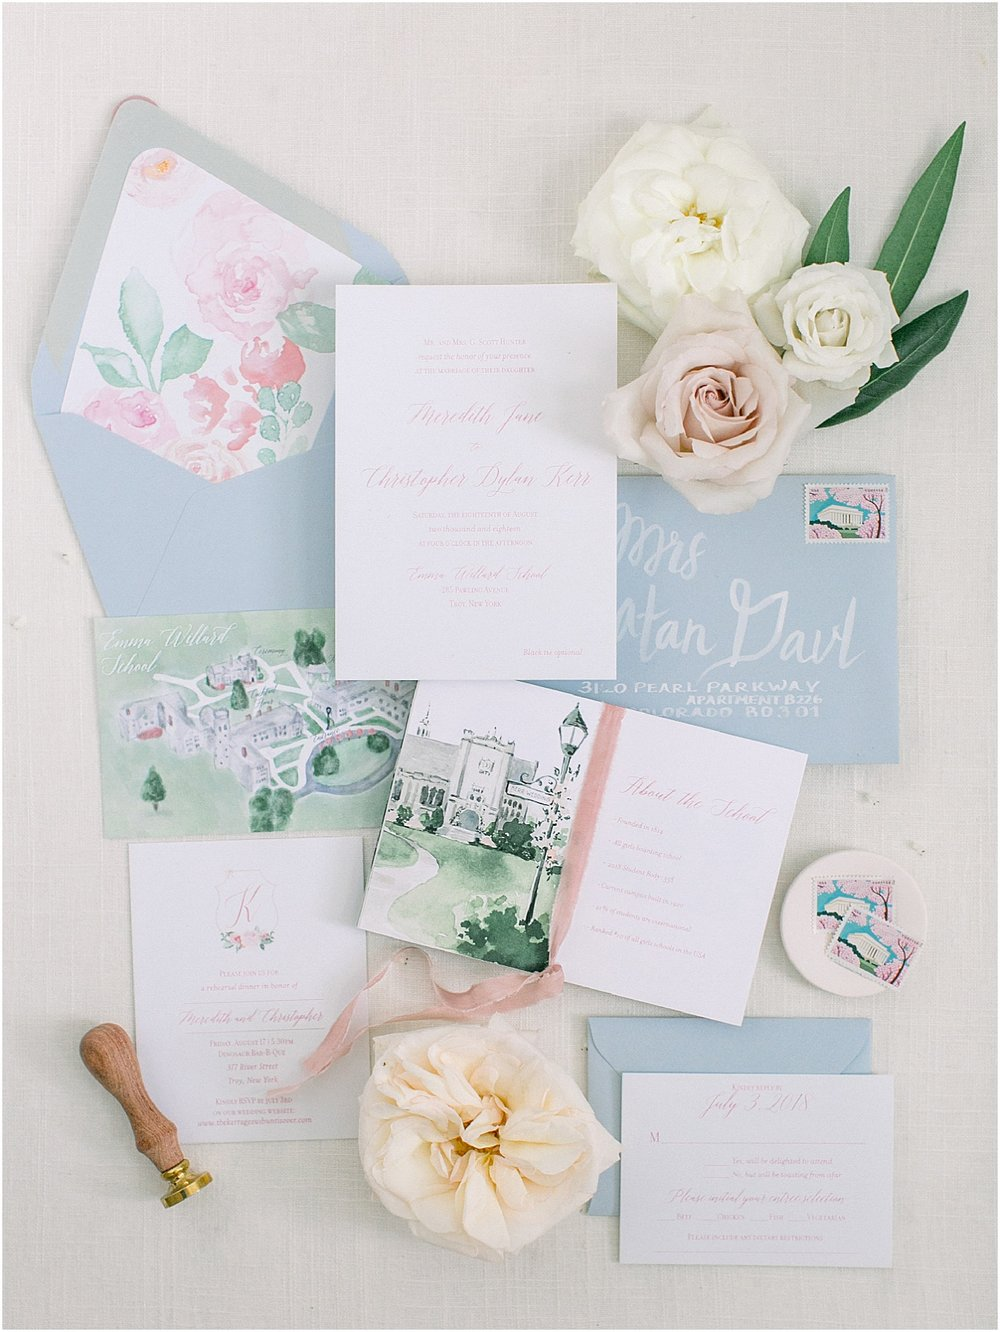 our_wedding_day_troy_NY_emma_willard_fairy_tale_royal_neutral_beauty_and_the_beast_moped_private_estate_cape_cod_boston_wedding_photographer_meredith_jane_photography_chris_kerr_photo_1940.jpg